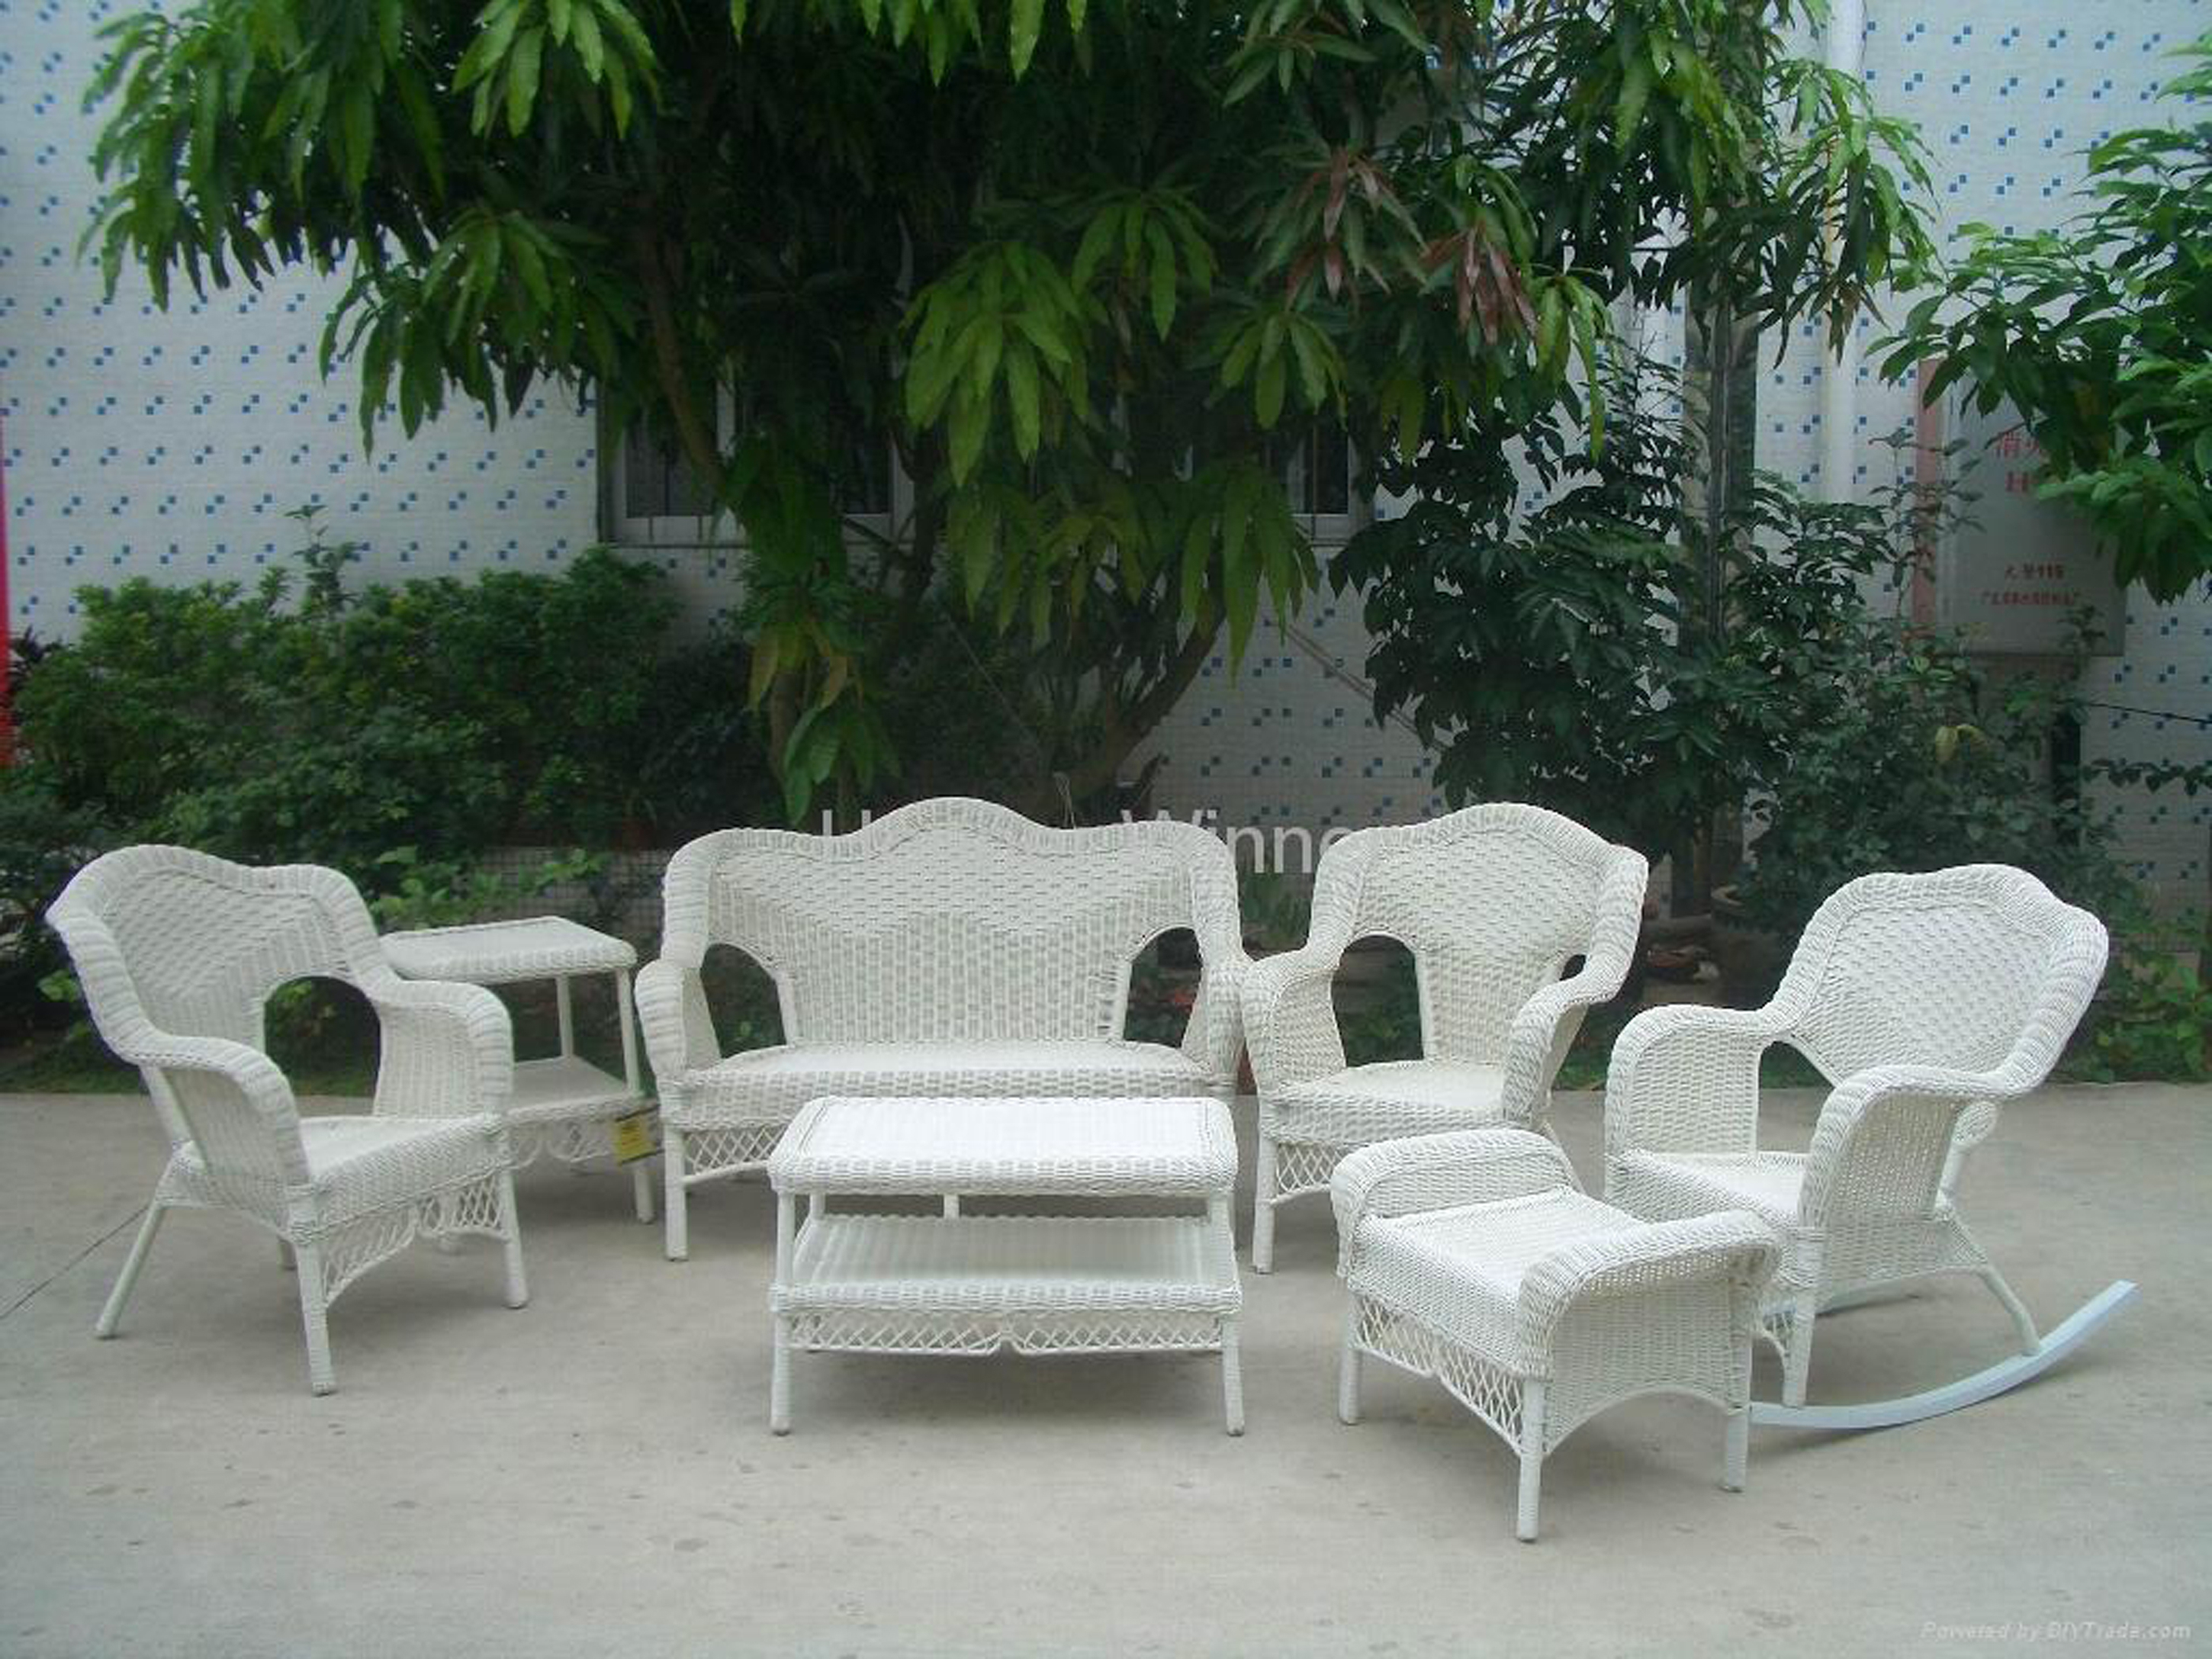 Lovely Outdoor Modern Wicker Design Idea With White Wicker Armchairs Lovable Outdoor Modern Wicker Design Ideas (View 18 of 20)